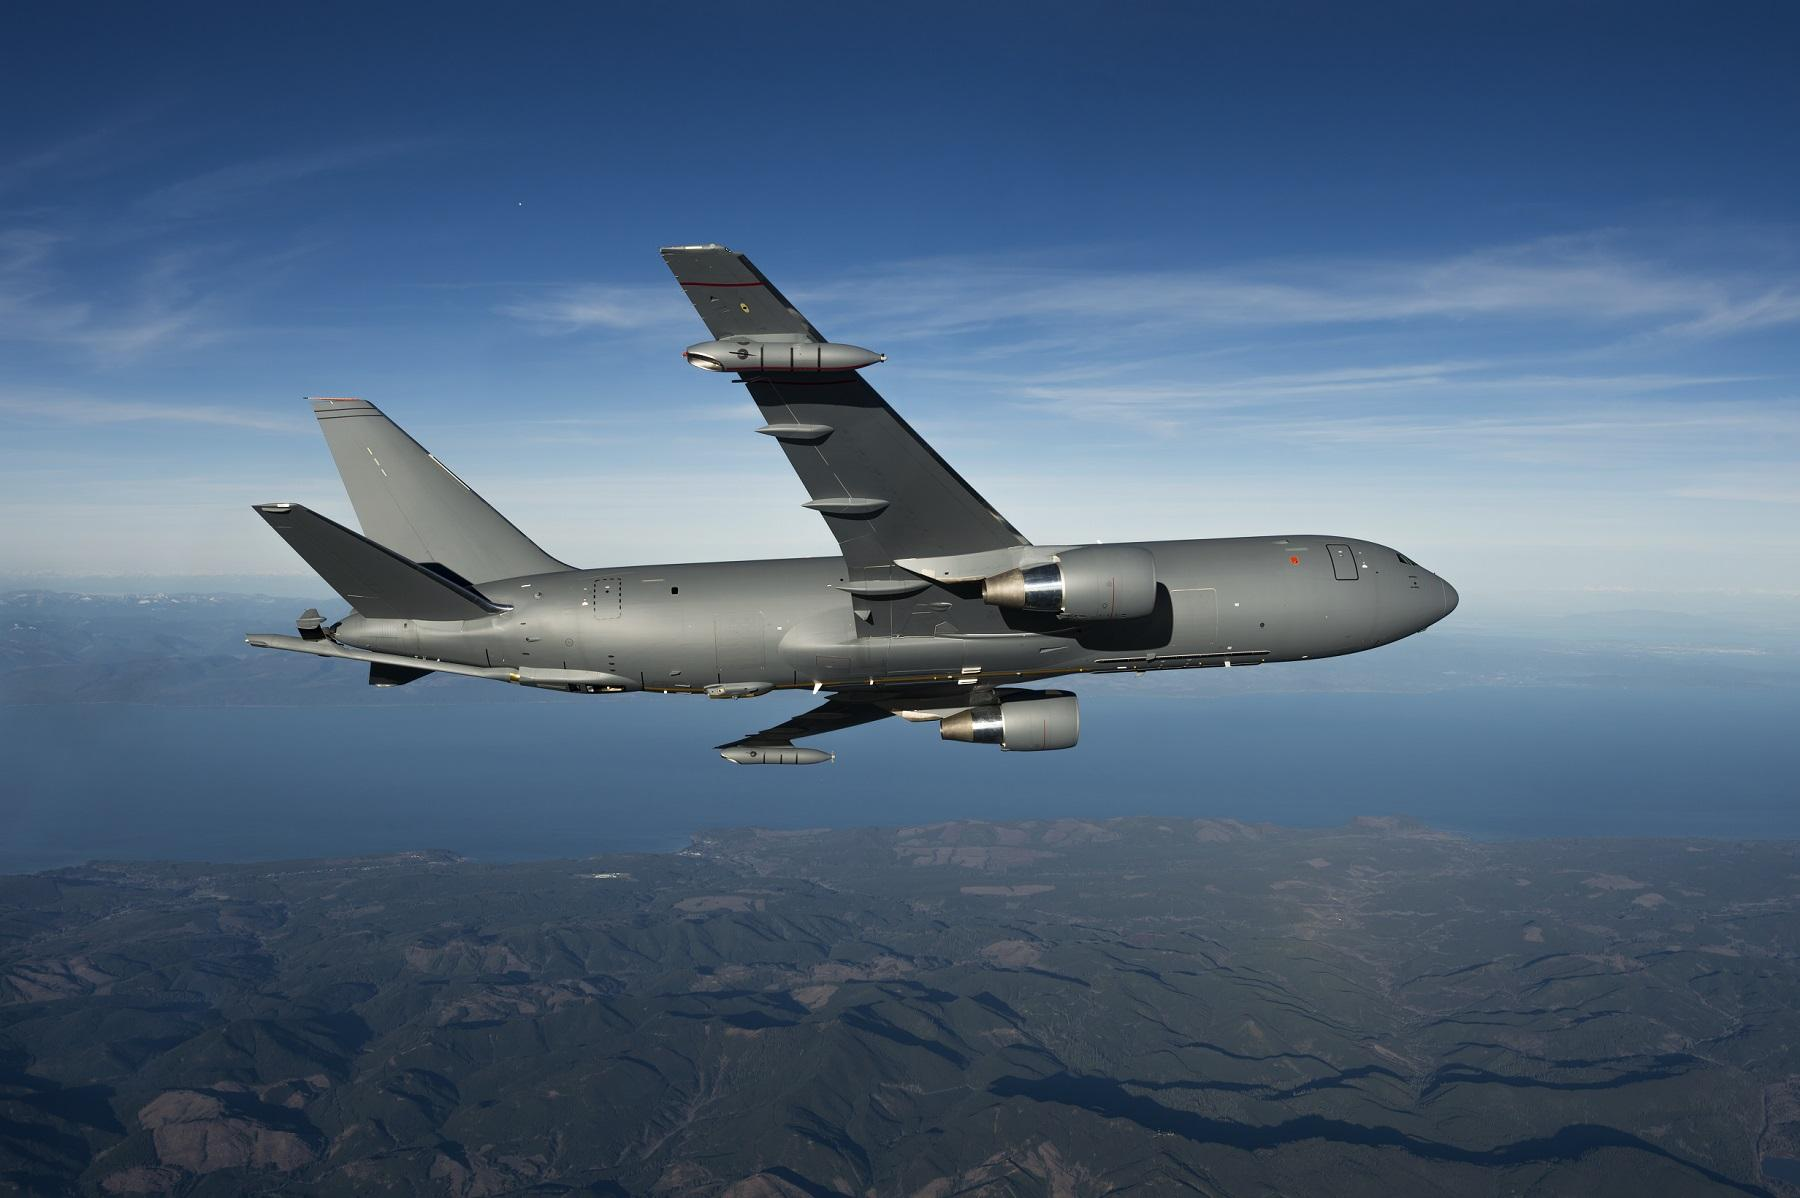 Boeing, USAF Agree On Dramatic KC-46 Remote Vision System Redesign